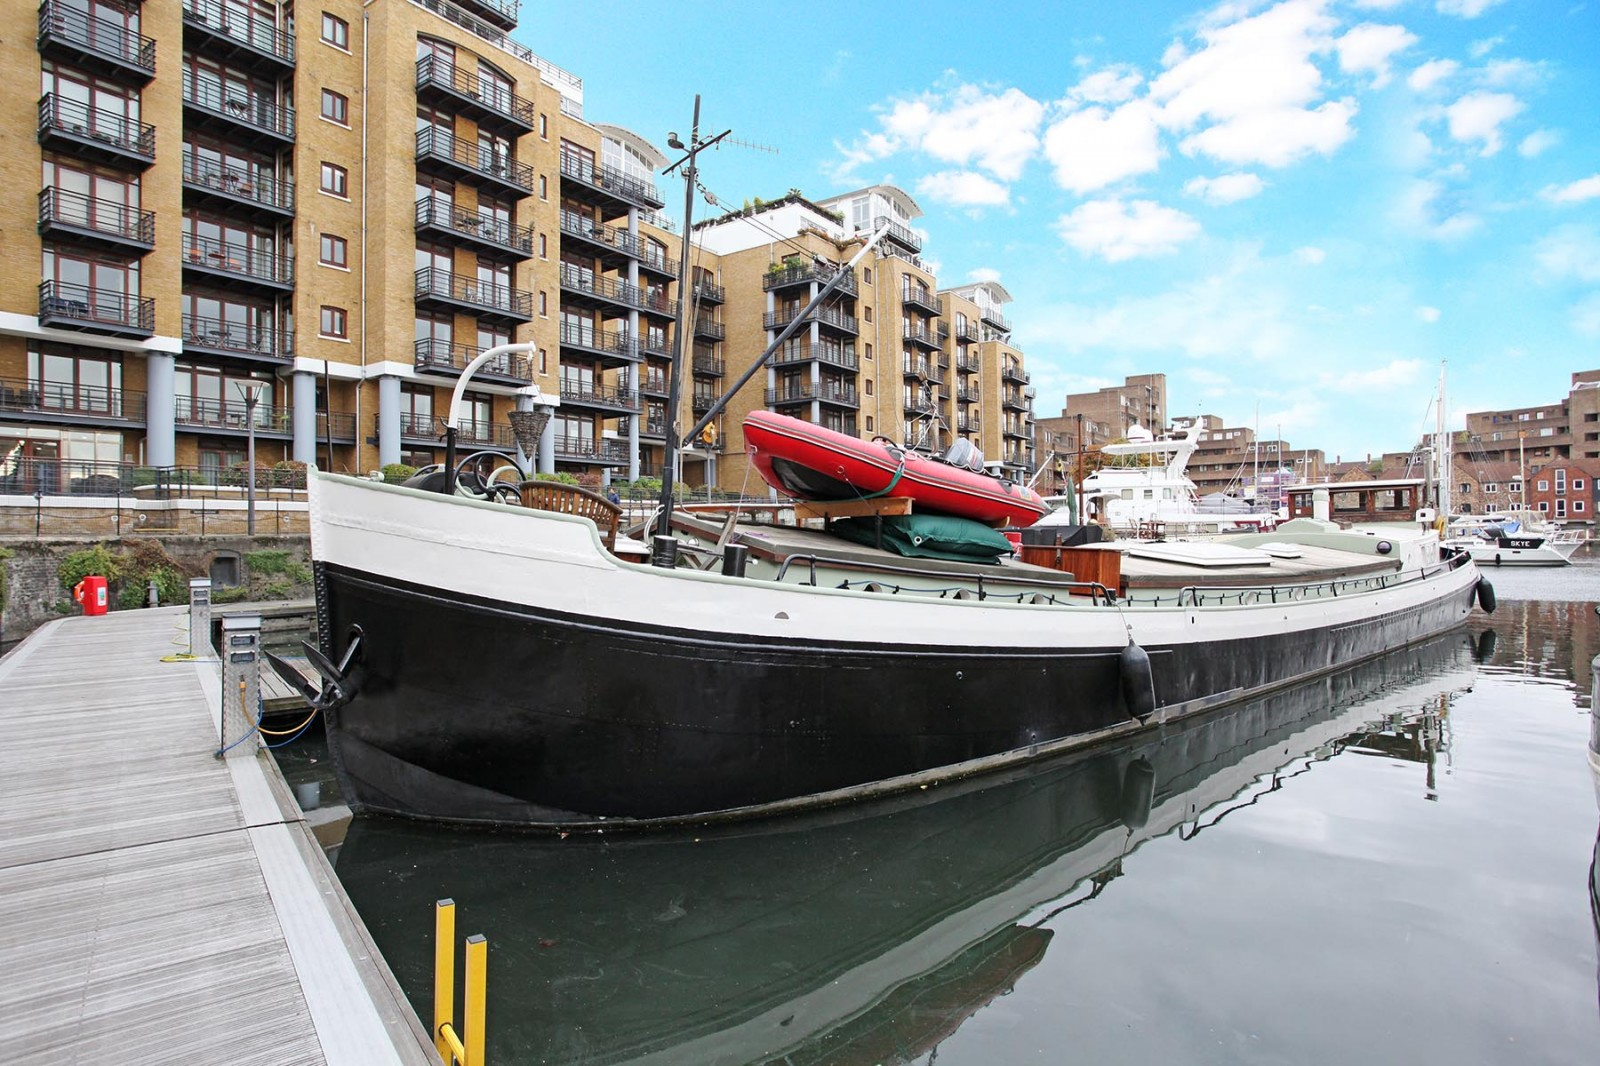 88ft barge st katherine docks